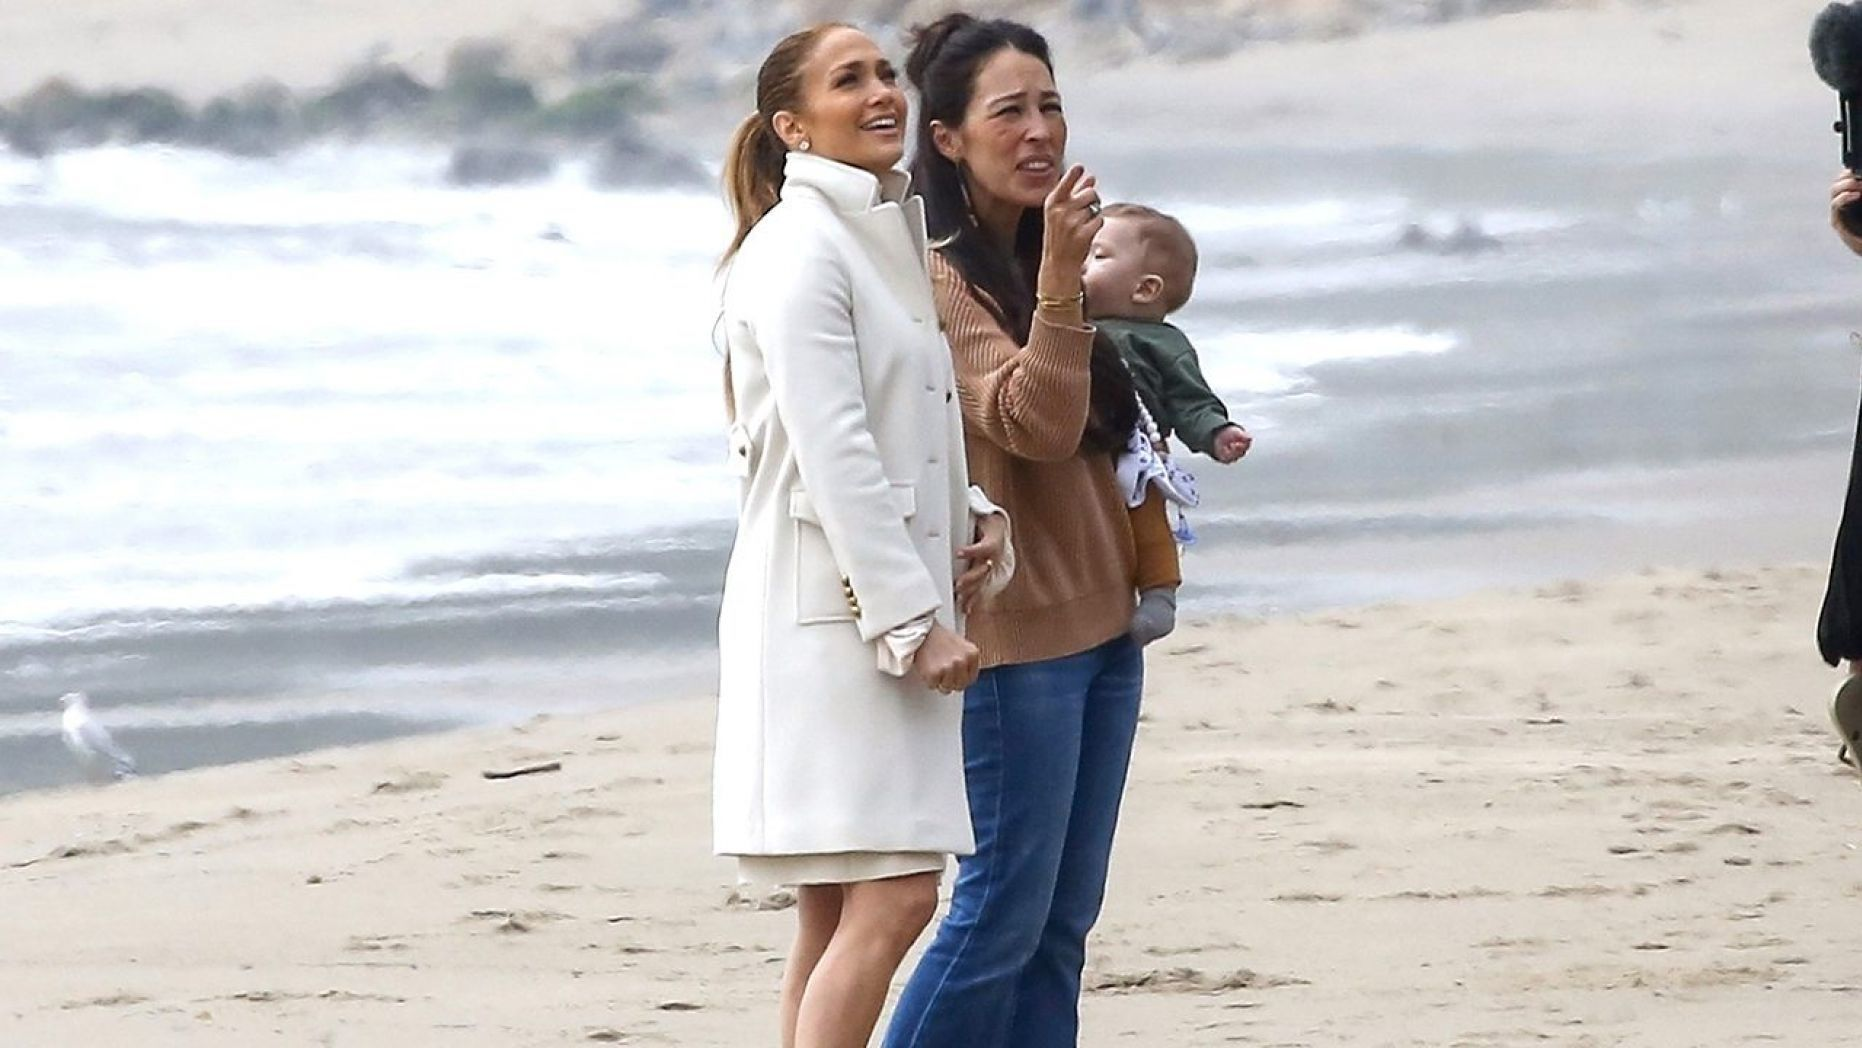 Jennifer Lopez Turns to Joanna Gaines for Help Remodeling Her $6.6 Million Malibu Beach House